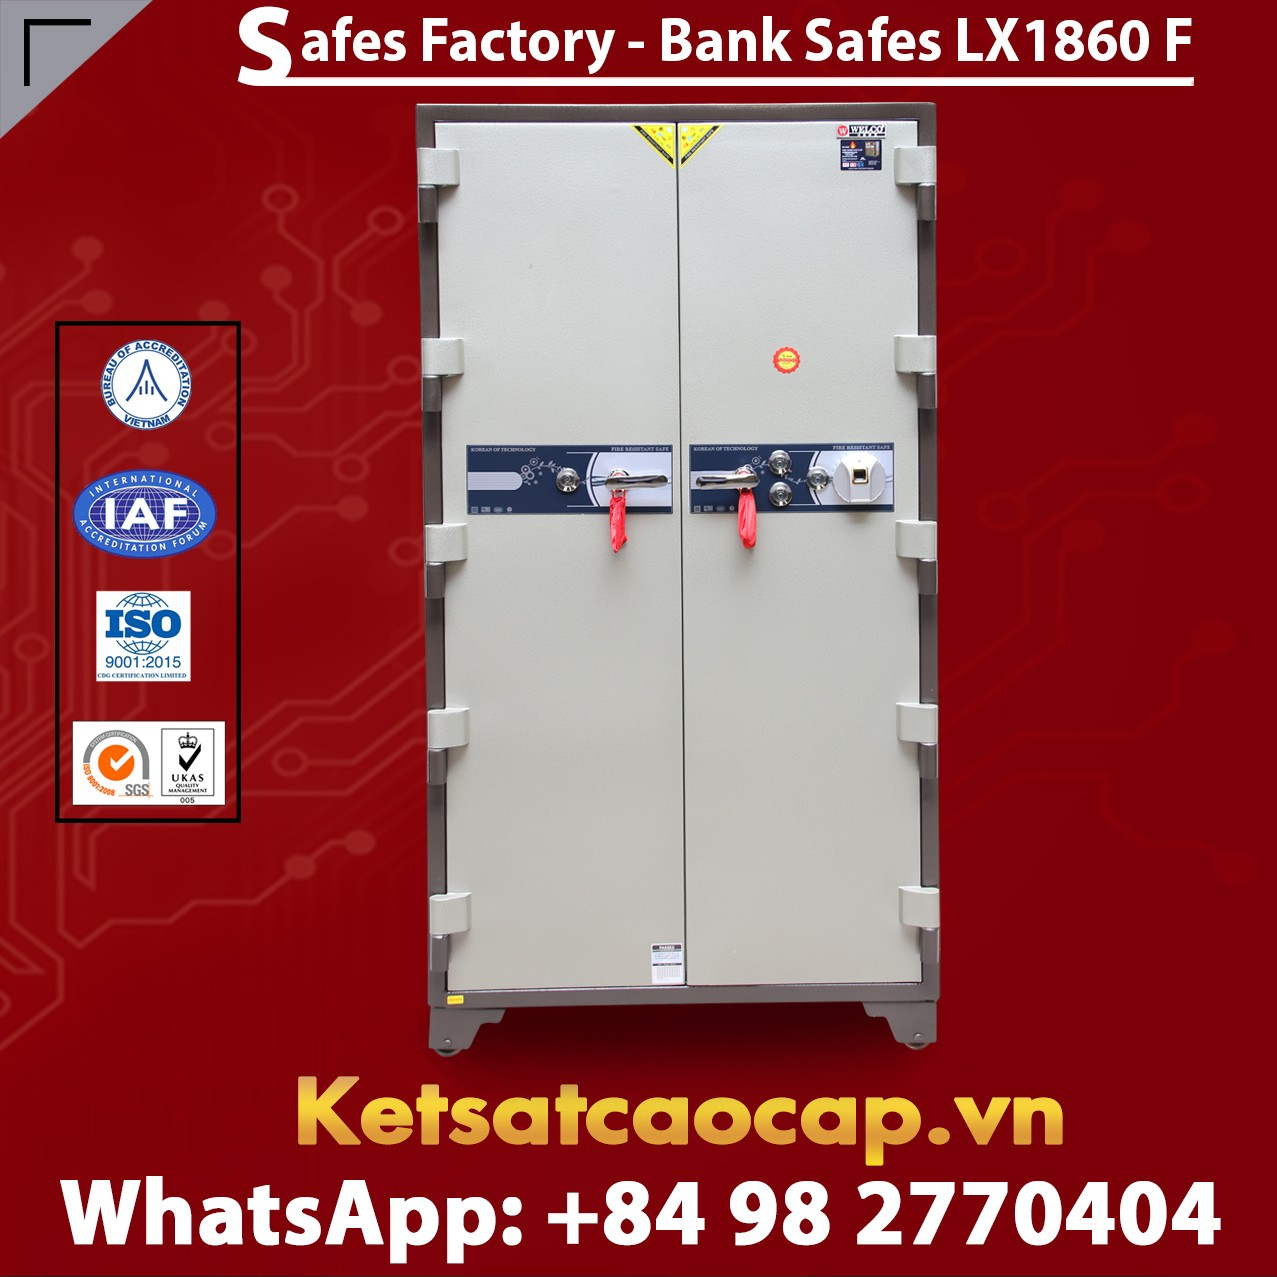 Bank Safes LX 1860 F Two Door Fingerprint Locking Customized Models